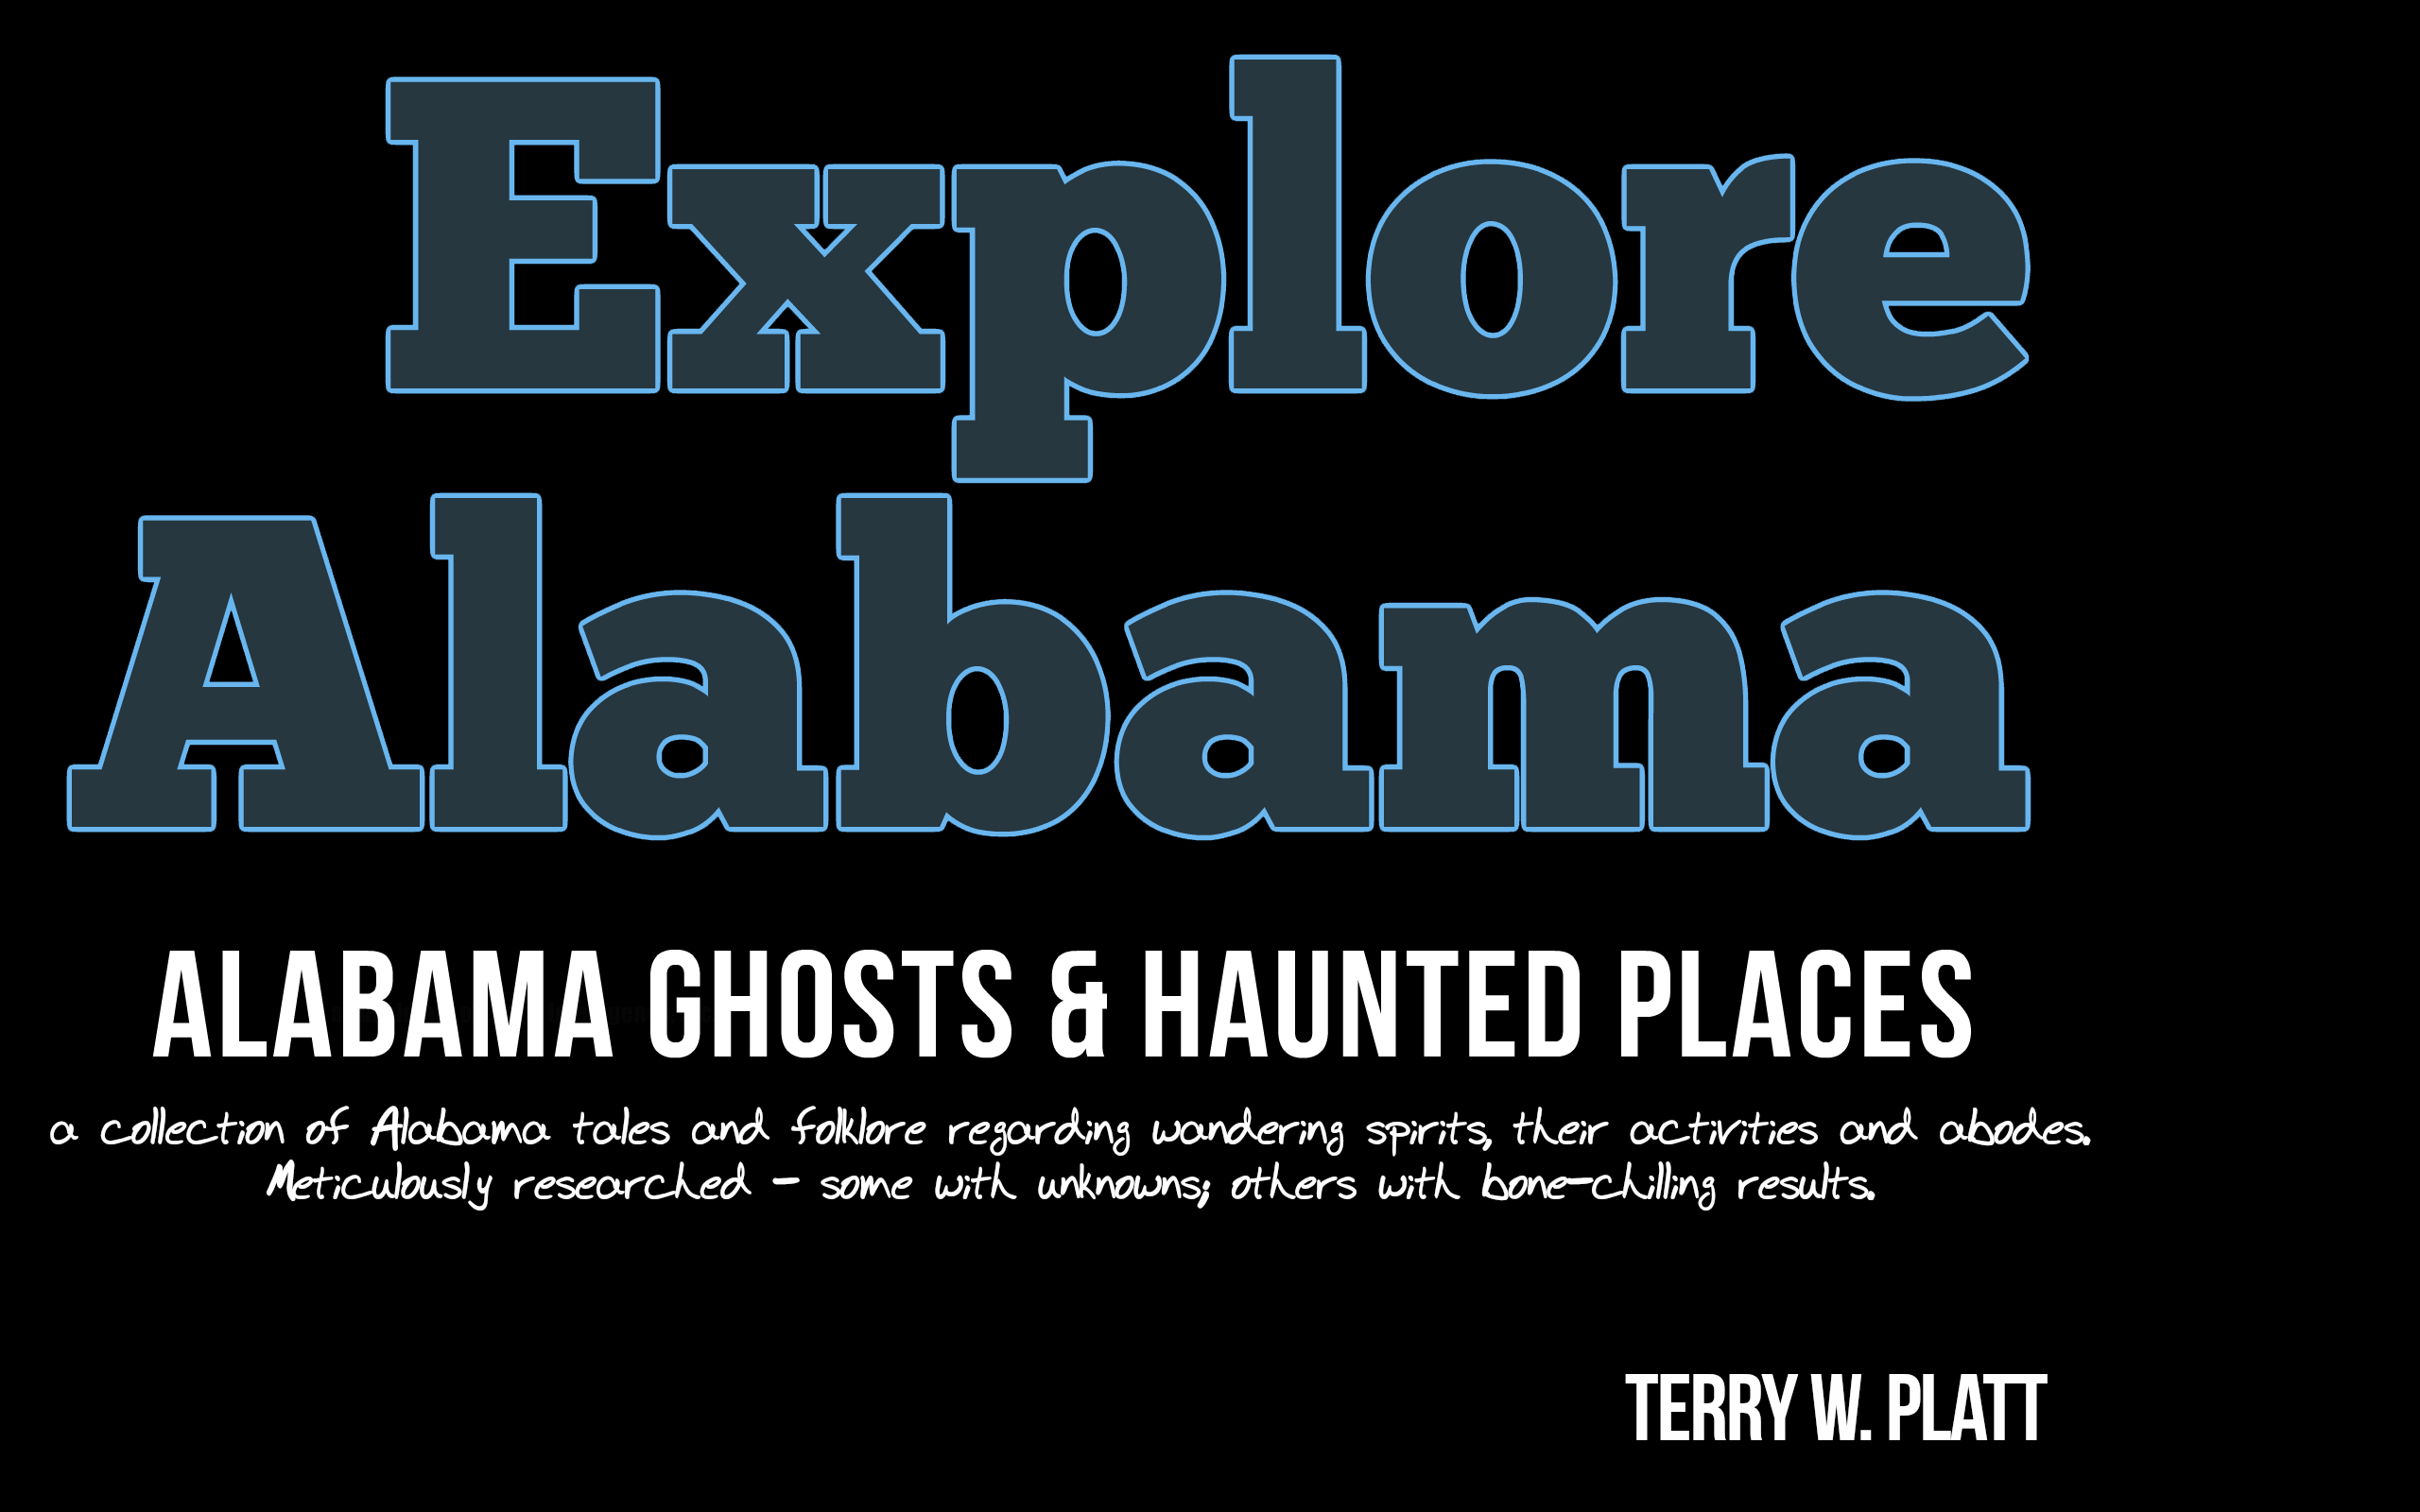 Explore Alabama: Alabama Ghosts & Haunted Places